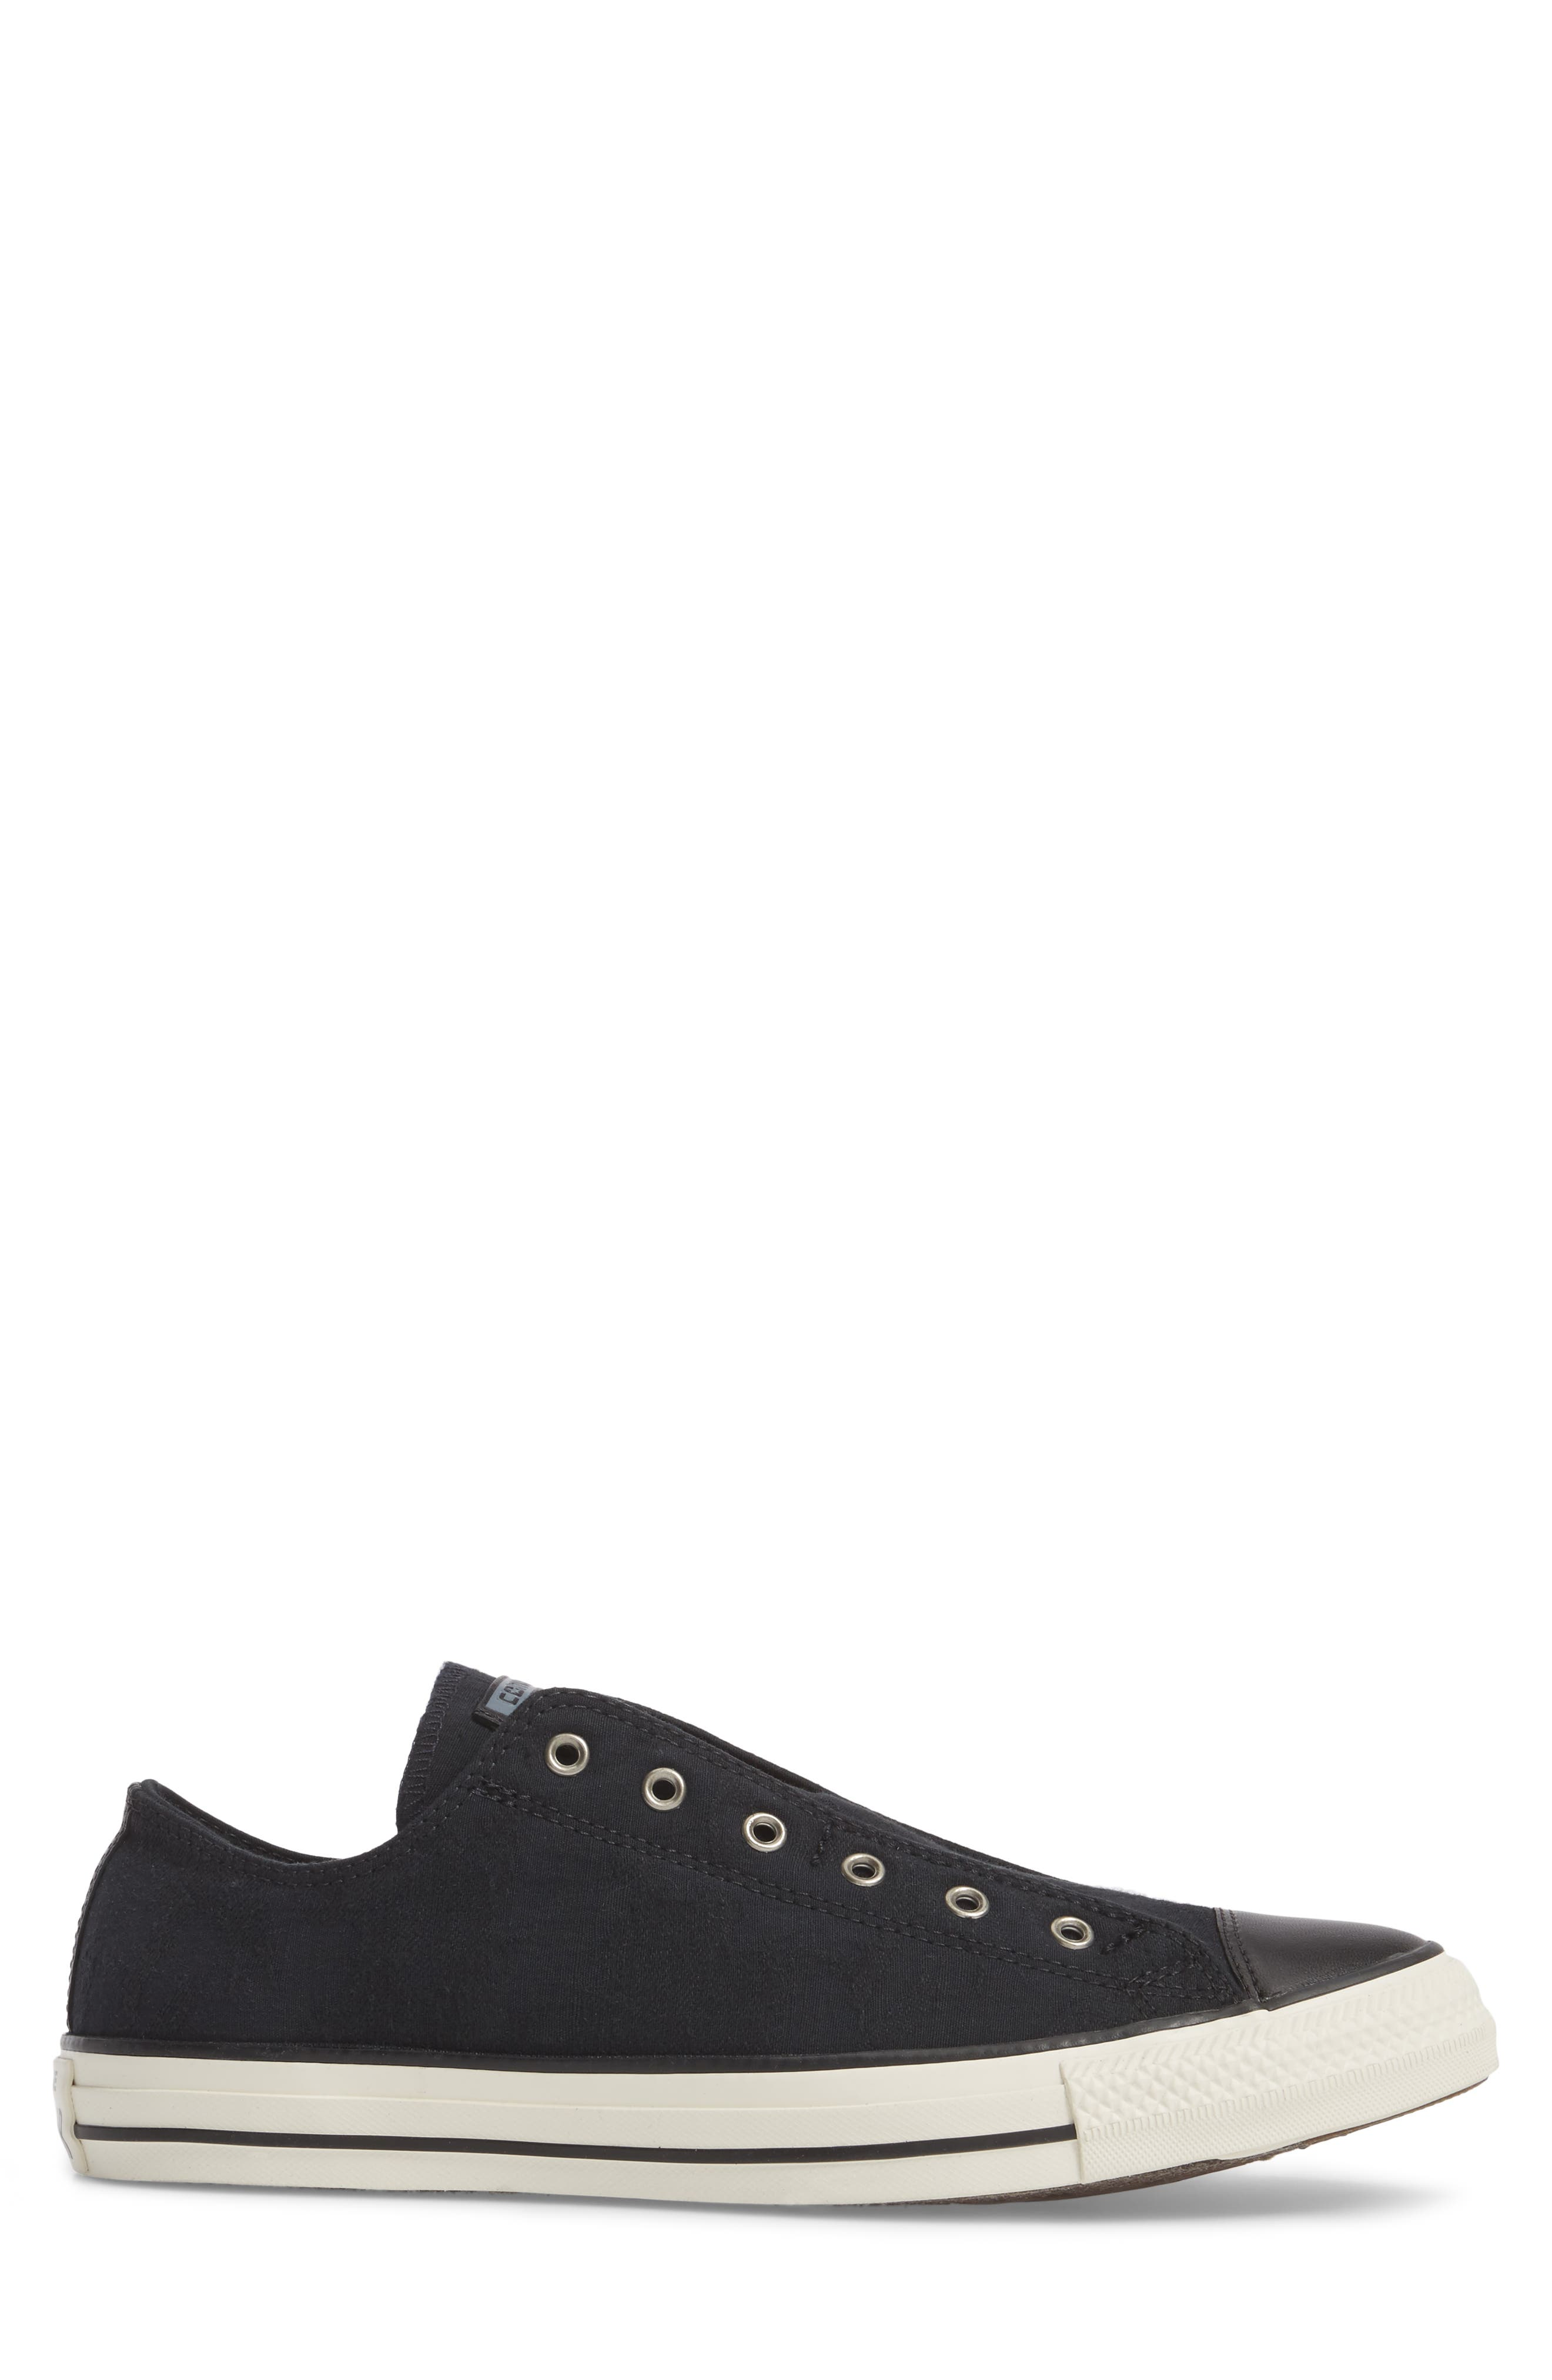 Chuck Taylor<sup>®</sup> All Star<sup>®</sup> Laceless Low Top Sneaker,                             Alternate thumbnail 3, color,                             Black